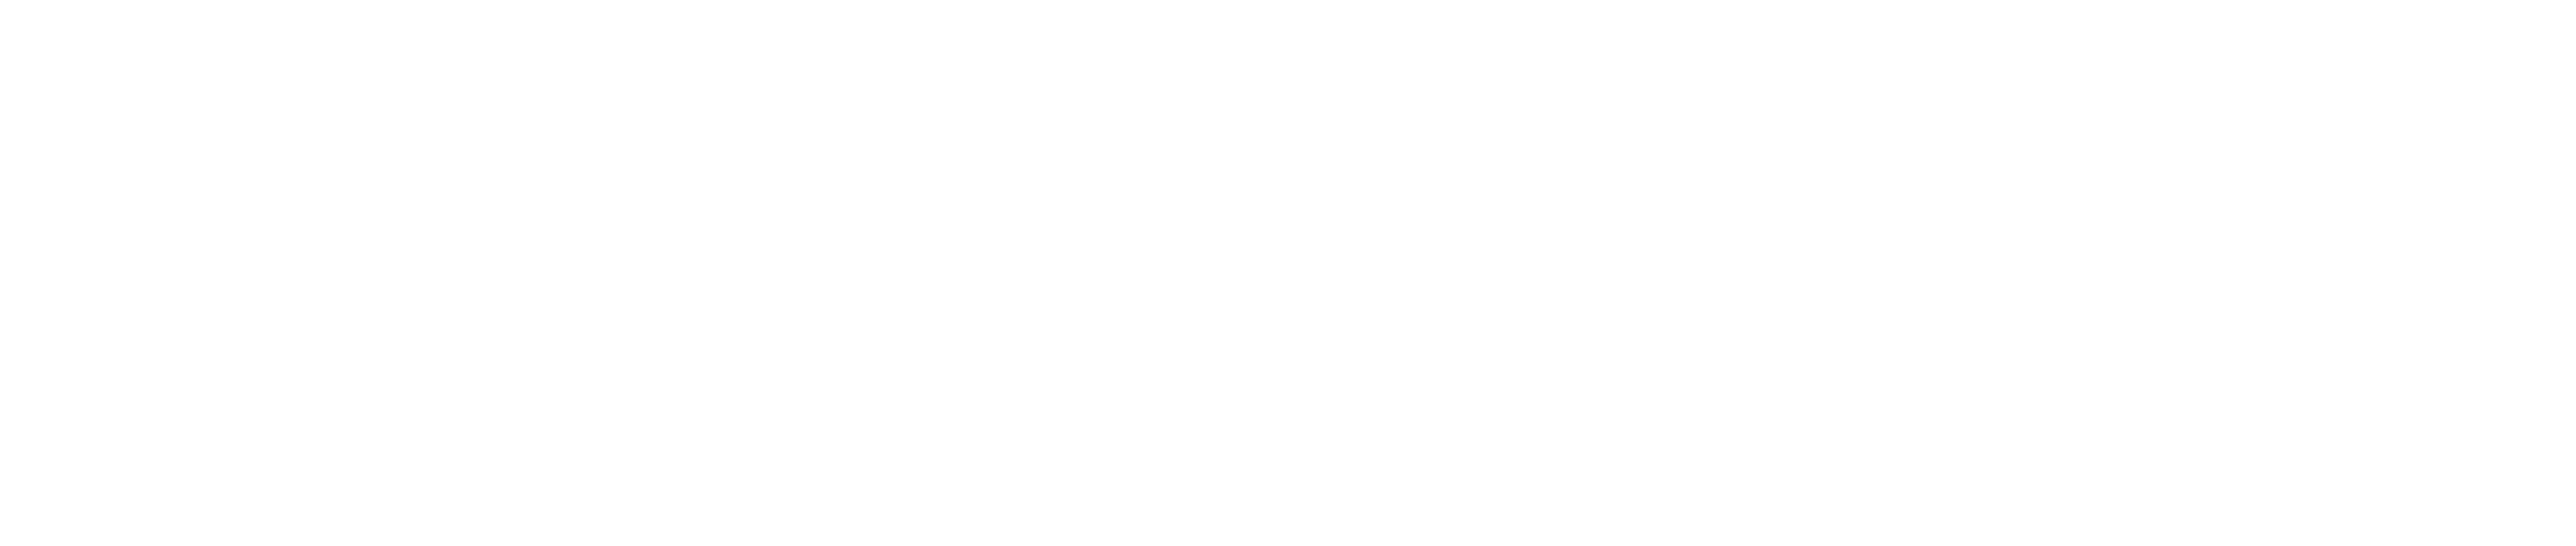 Andrews University - Center for Digital Learning & Instructional Technology